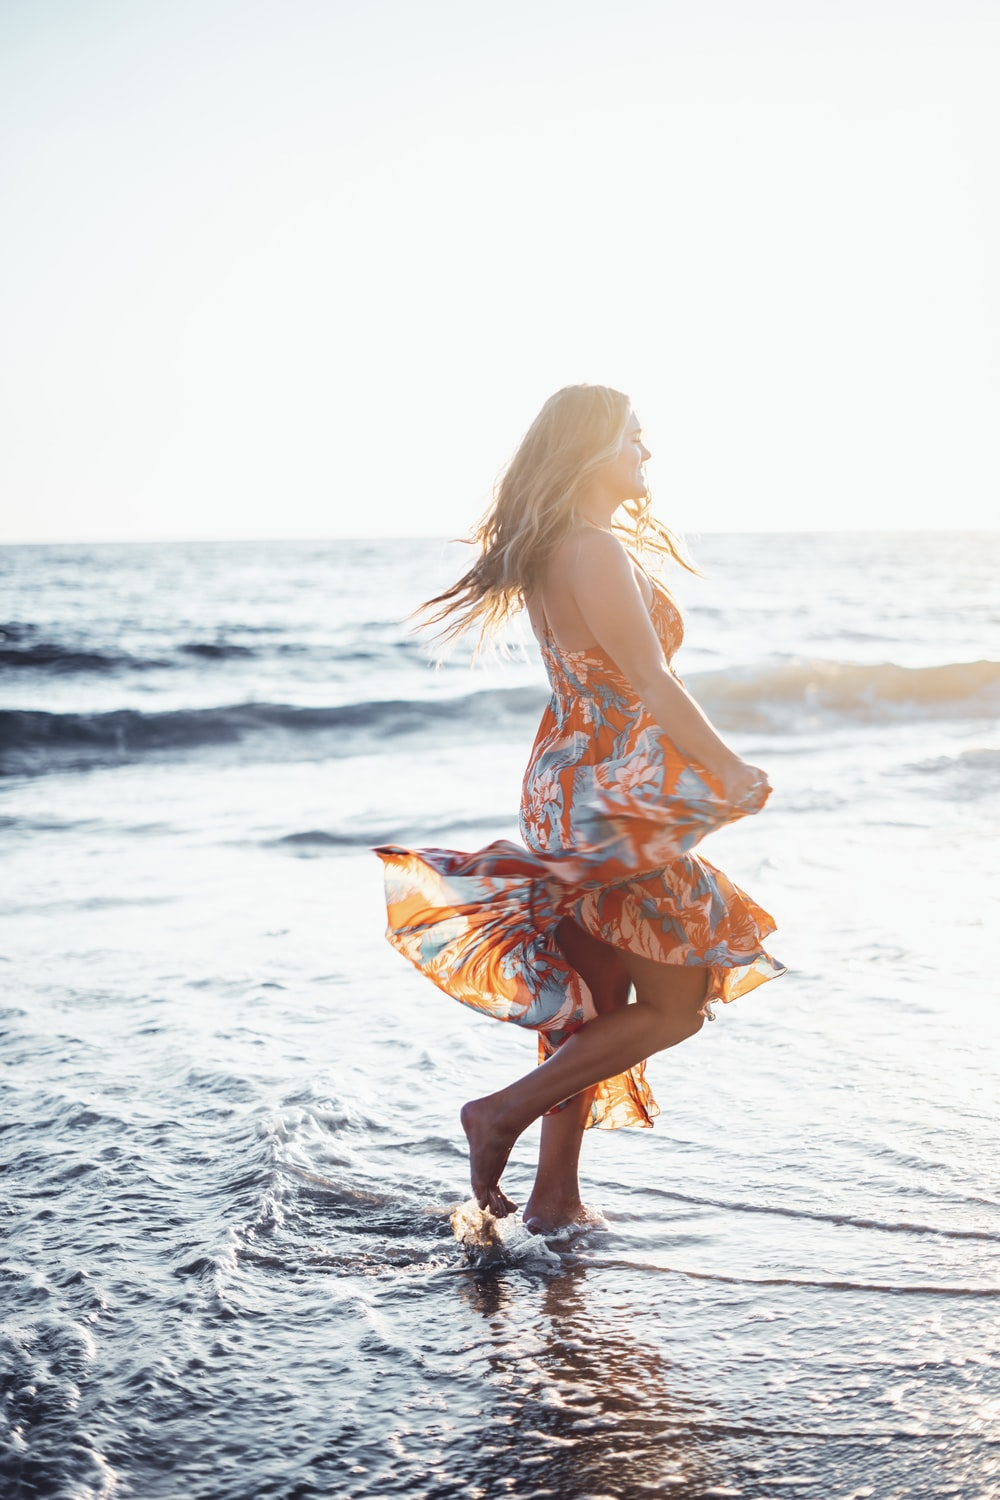 woman in orange dress walking on beach during daytime